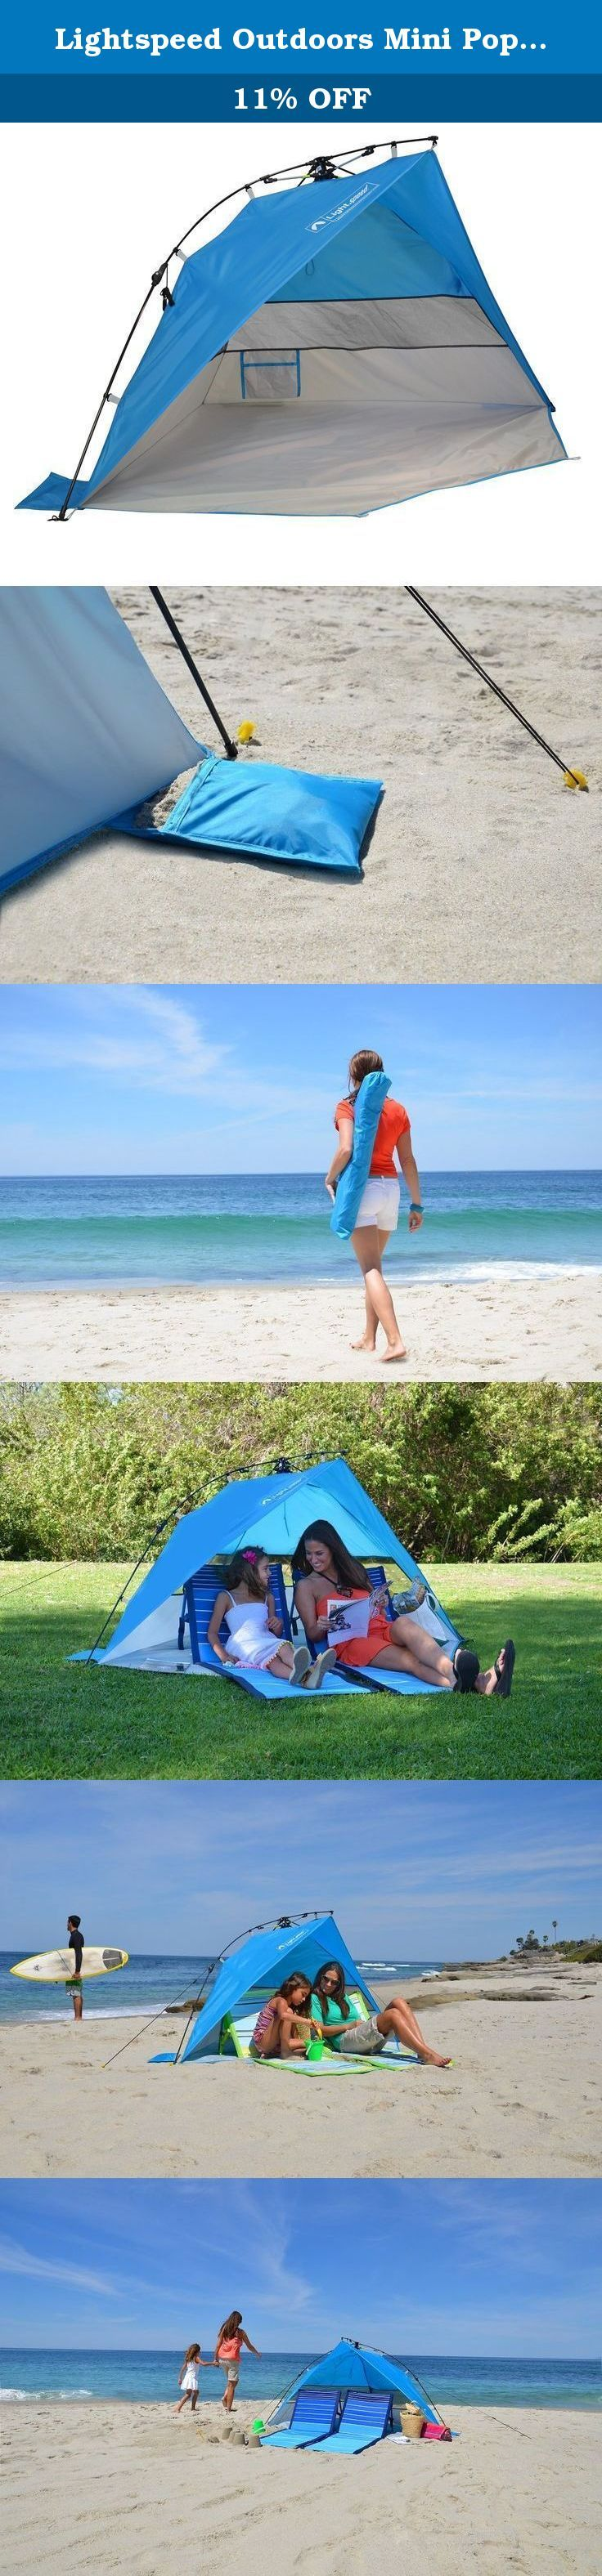 Lightspeed Outdoors Mini Pop Up Beach Tent Sun Shade, Blue. Lightspeed Outdoors Mini Pop Up Beach Tent and Sun Shade sets up in seconds to provide the perfect portable shelter. The Mini provides protection from sun, wind, and light rain during picnics, backyard events, sporting events, or at the beach. UPF 50+ sun protection, ultraportable and lightweight, this pop up beach tent is designed to provide instant shade and weather protection wherever you may need it. An extended front porch...